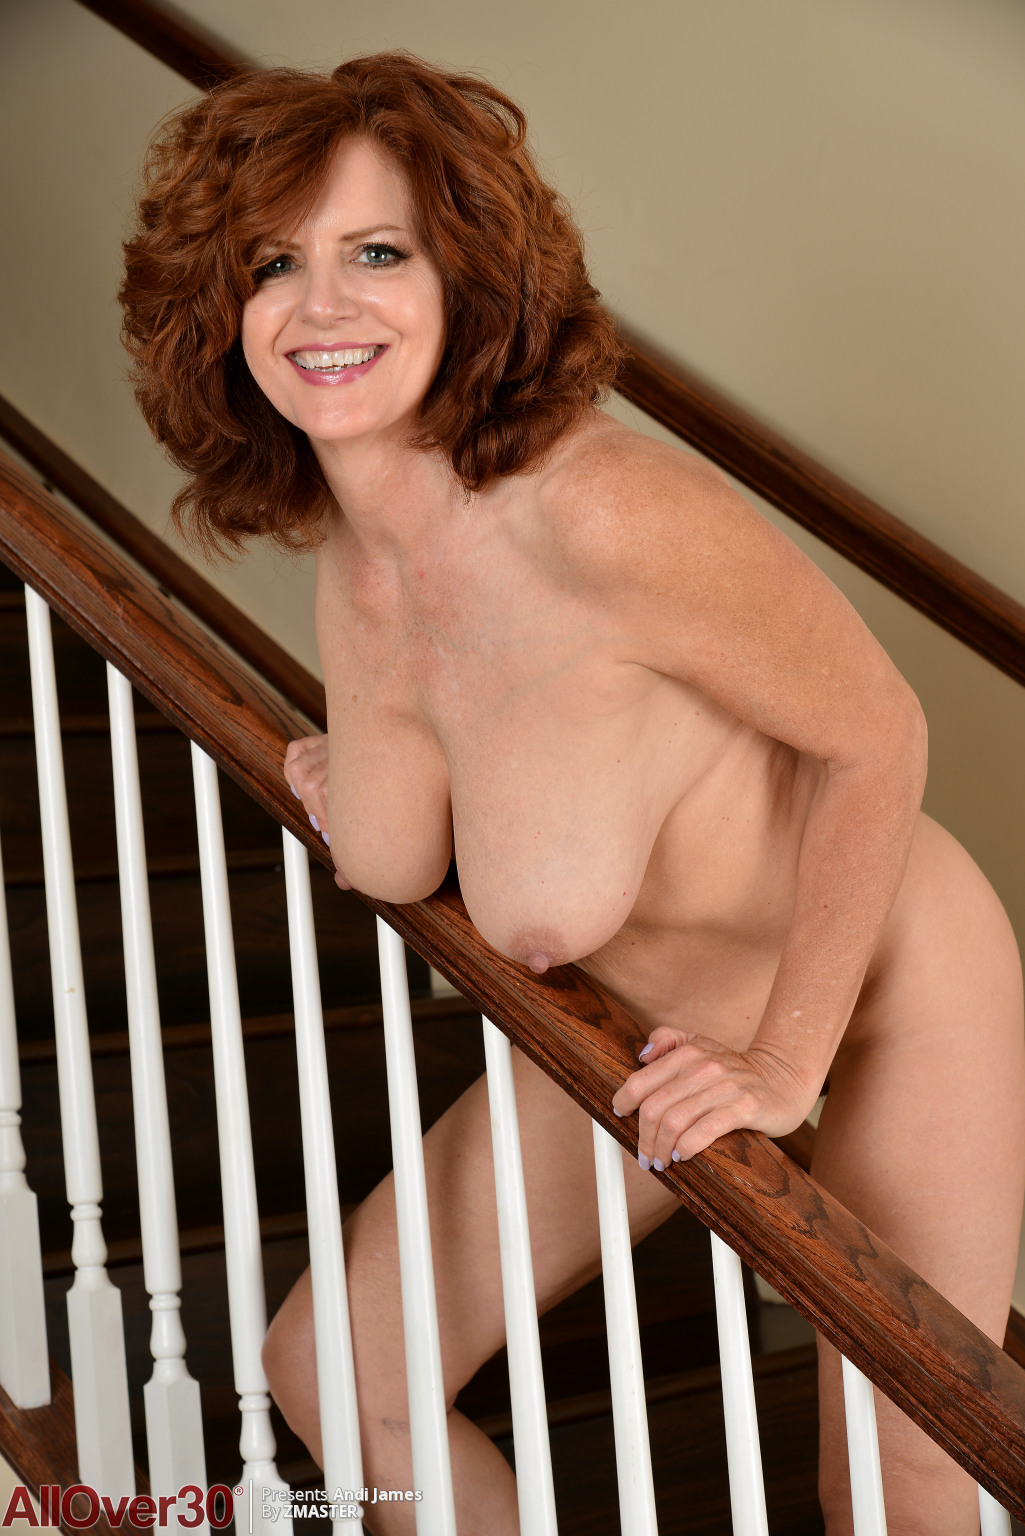 andi-james-staircase-redhead-12